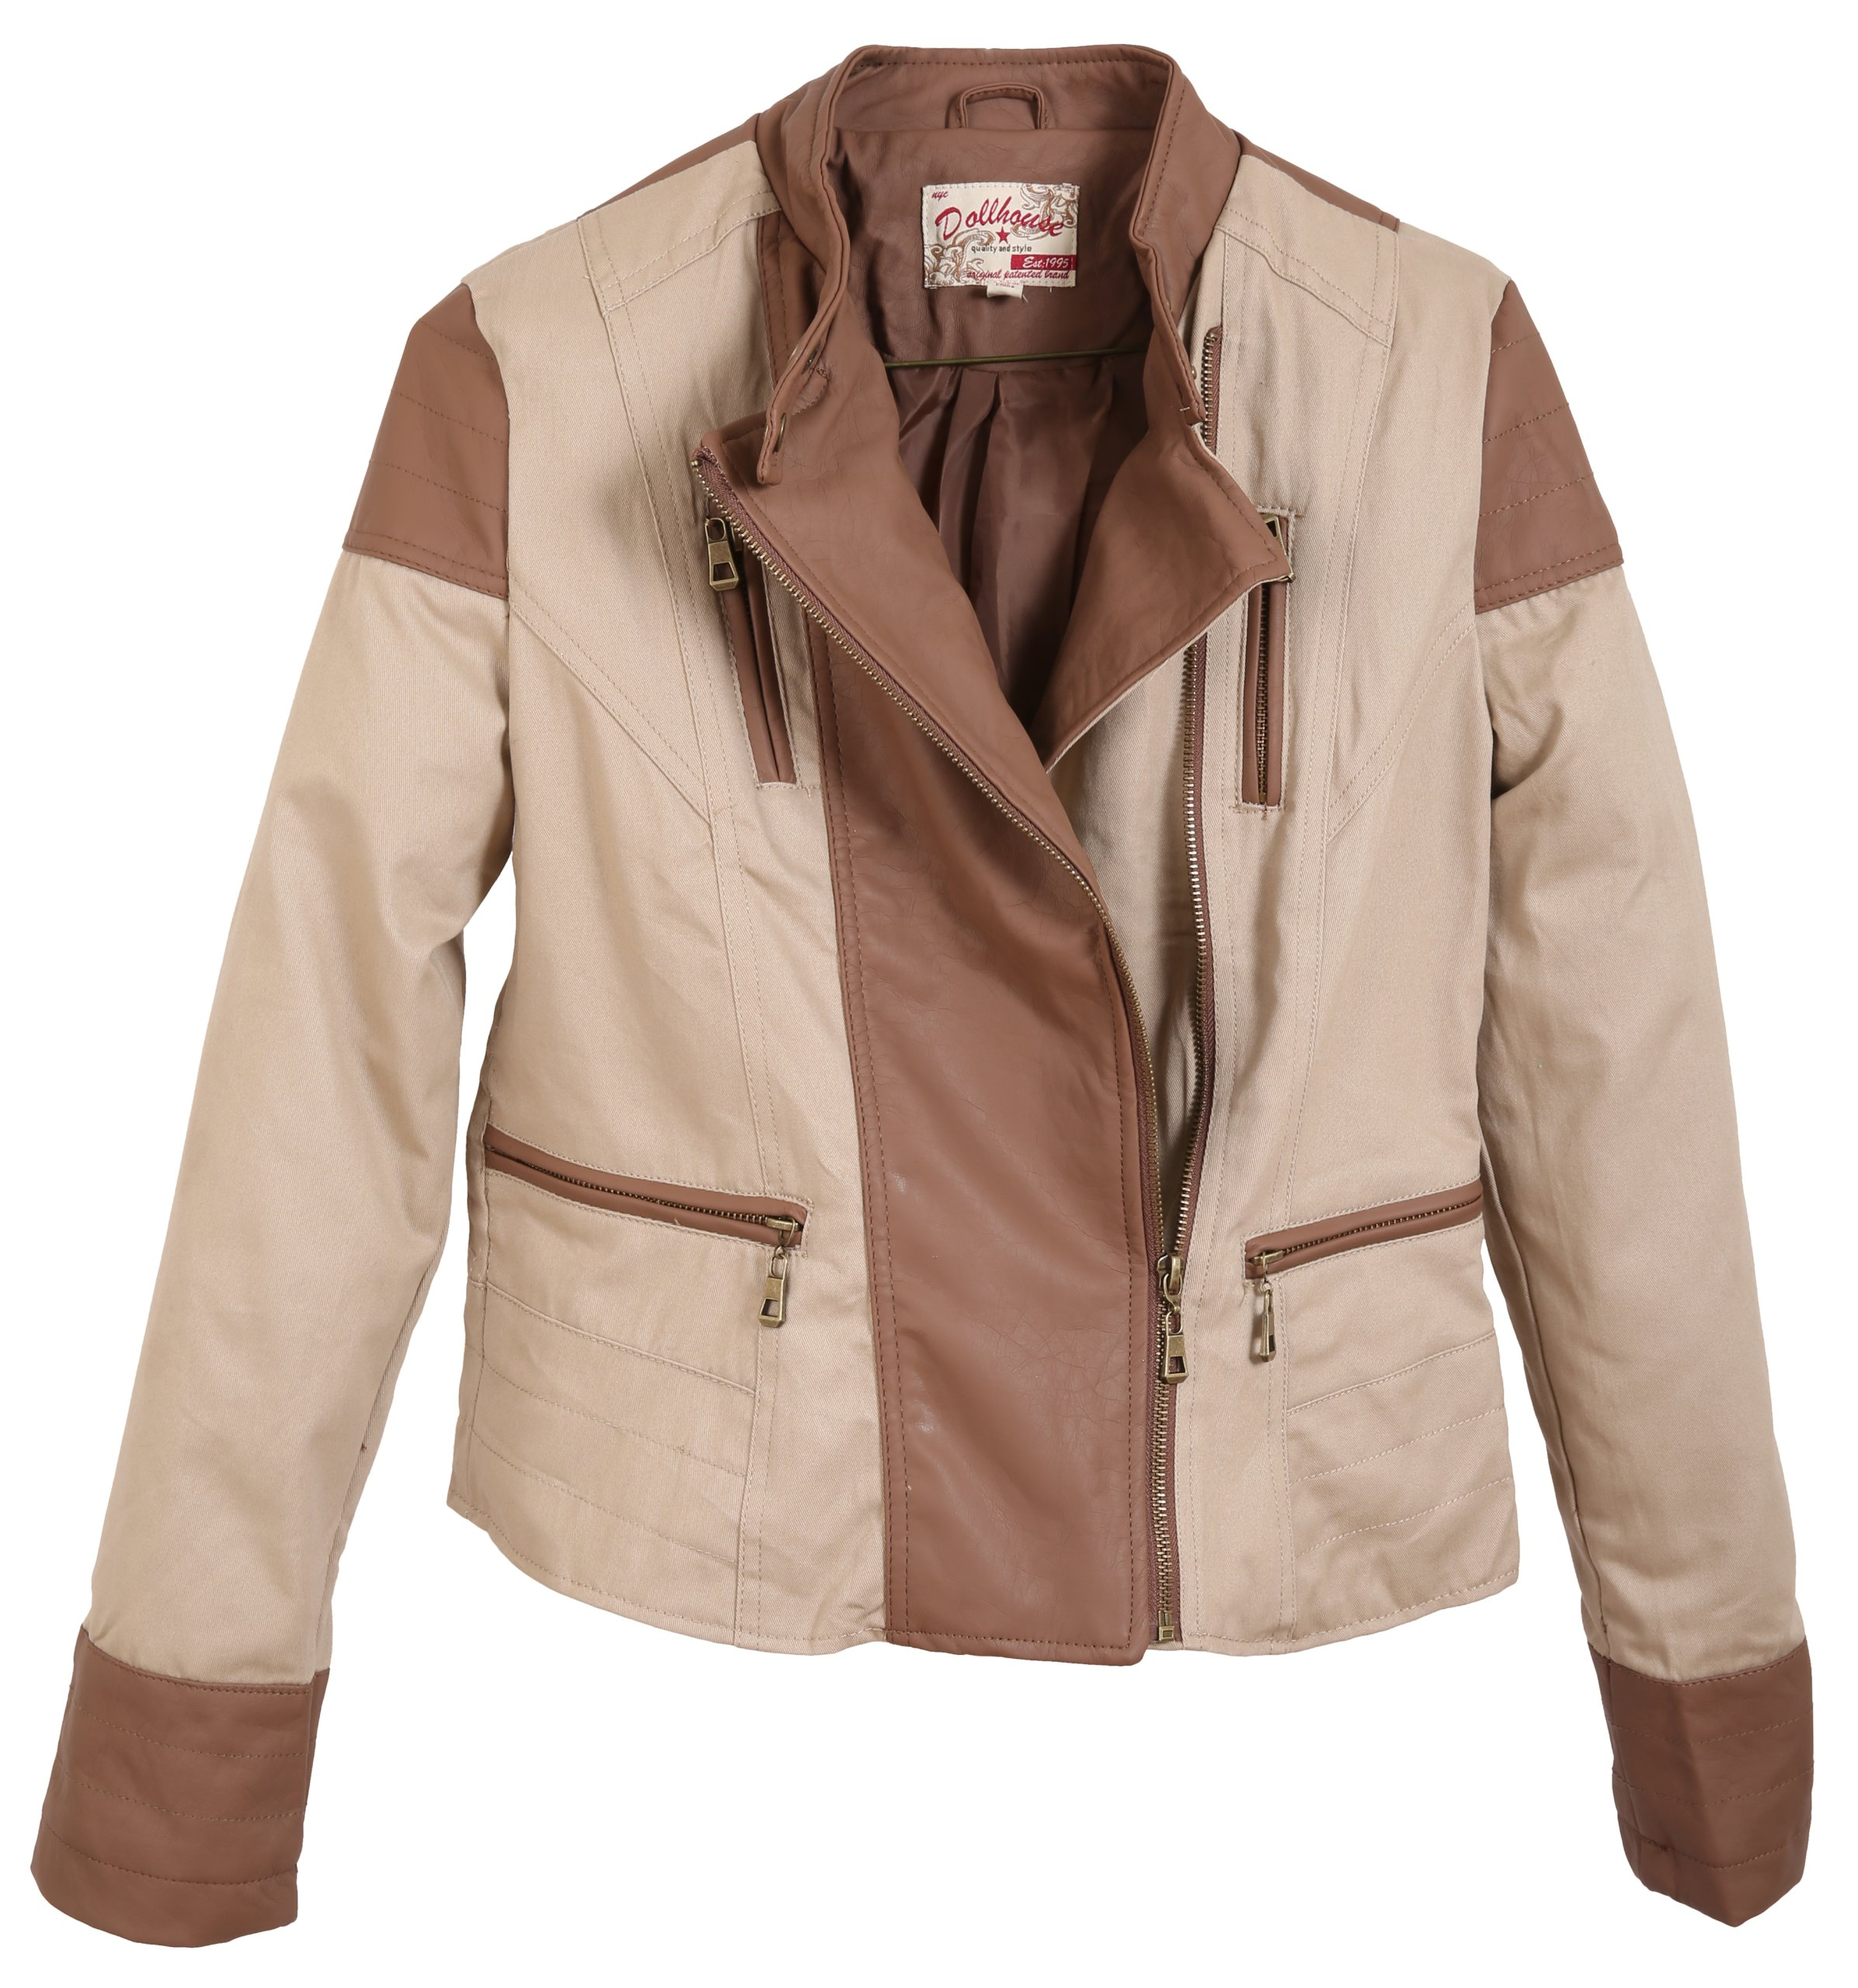 Dollhouse Junior'S Full Zip Leather Trimmed Jacket With Buttoned Mock Neck - Sand (Medium)